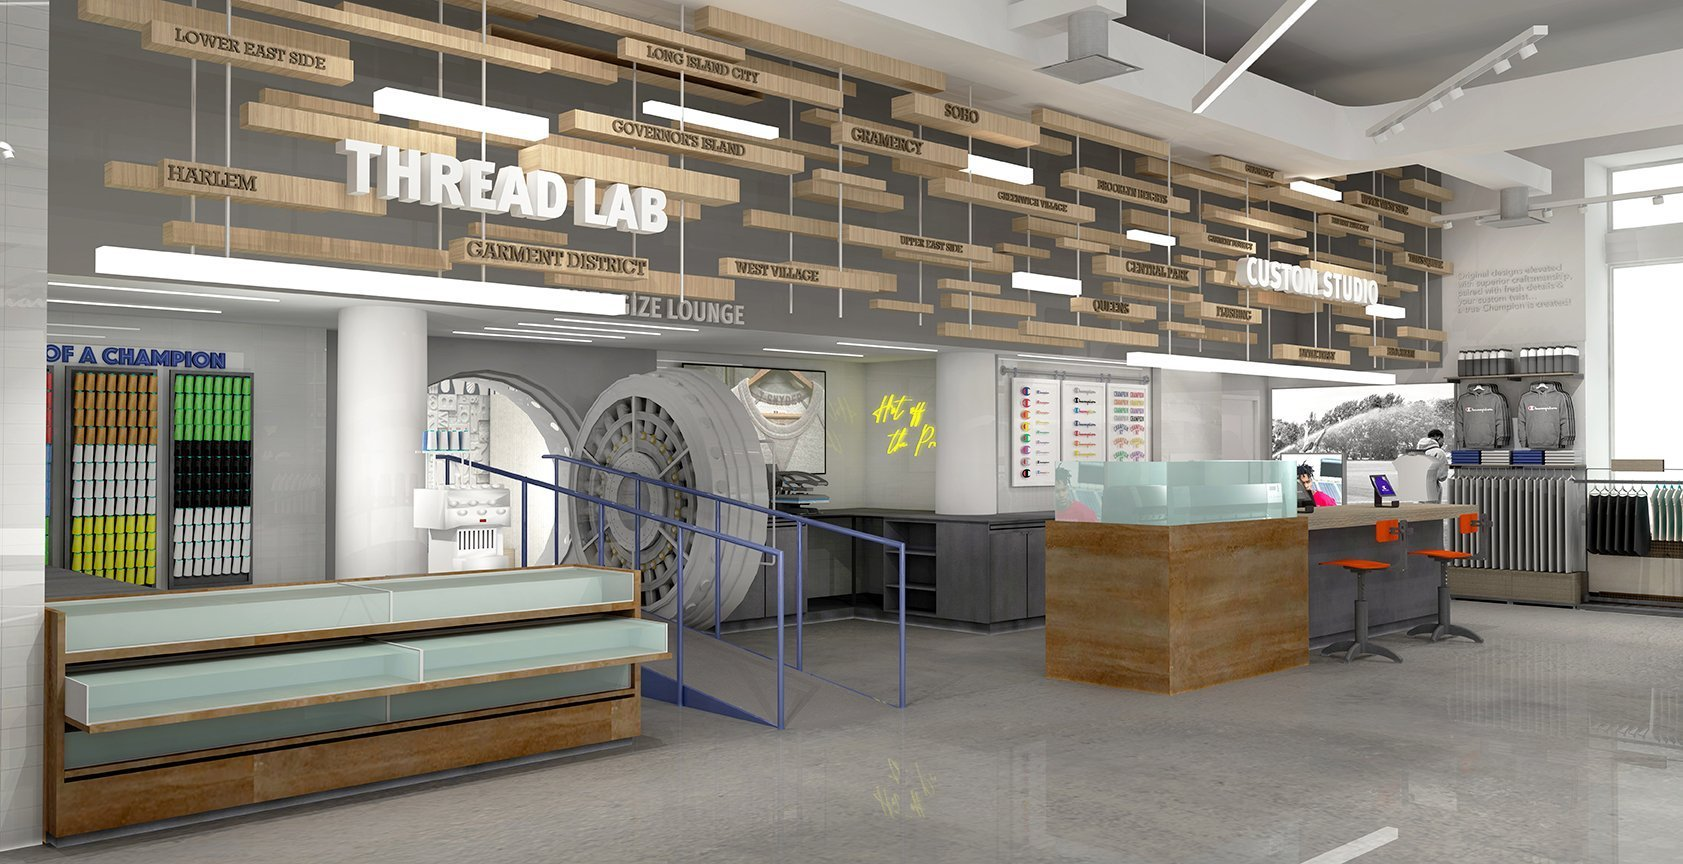 The back wall of the store shows the entire Customization Studio including the Thread Lab. In the middle is the entrance to The Vault—an old bank vault—which is now a special media room for guests.